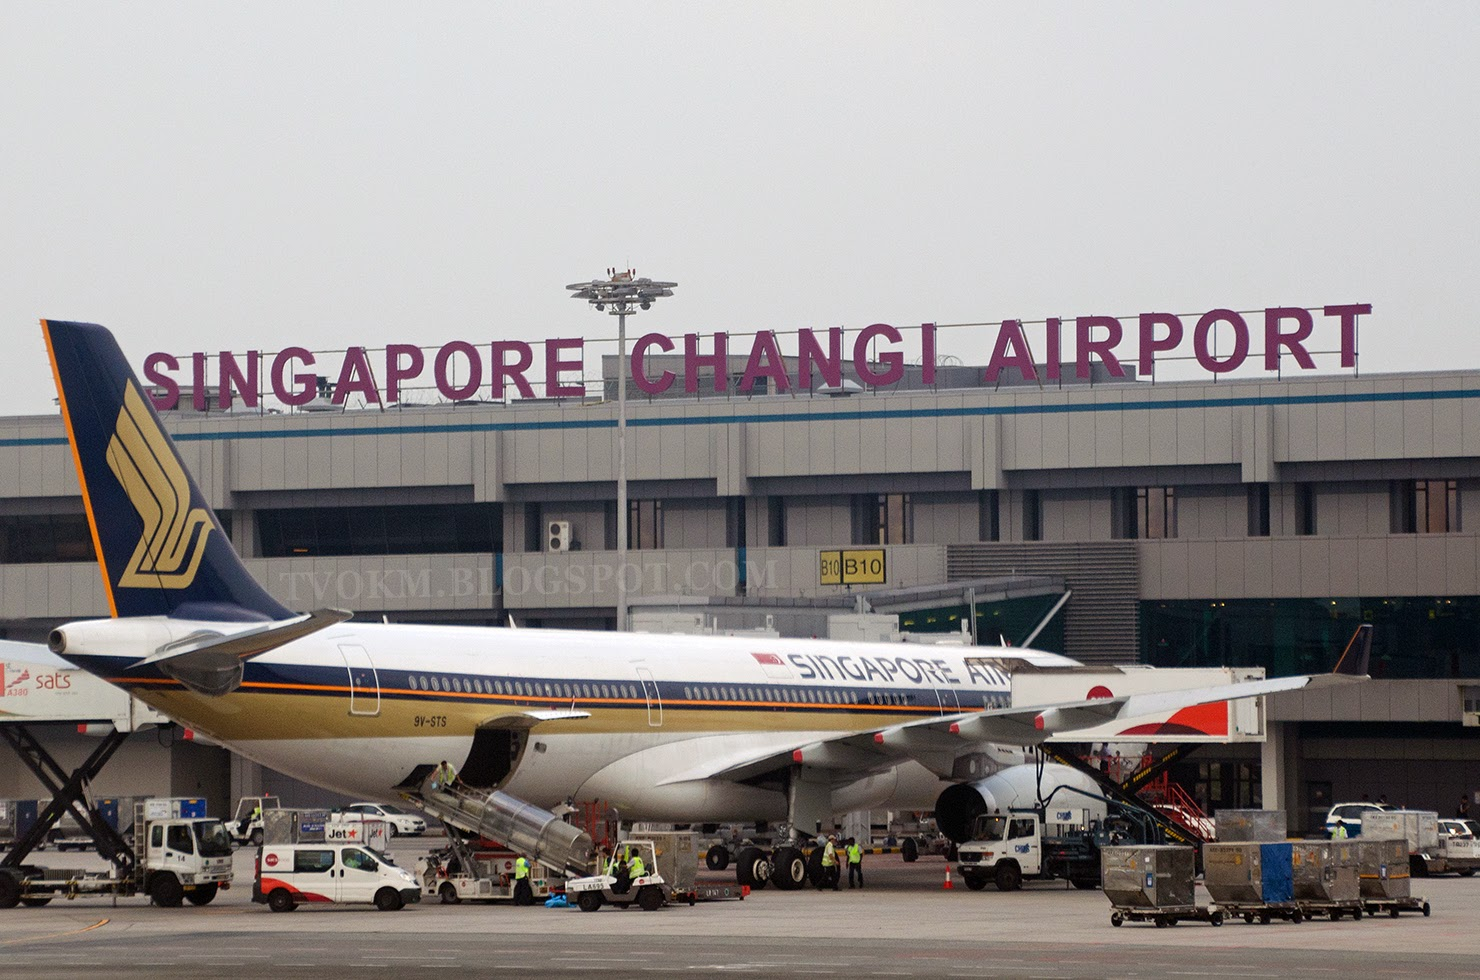 singapore changi airport best in the world